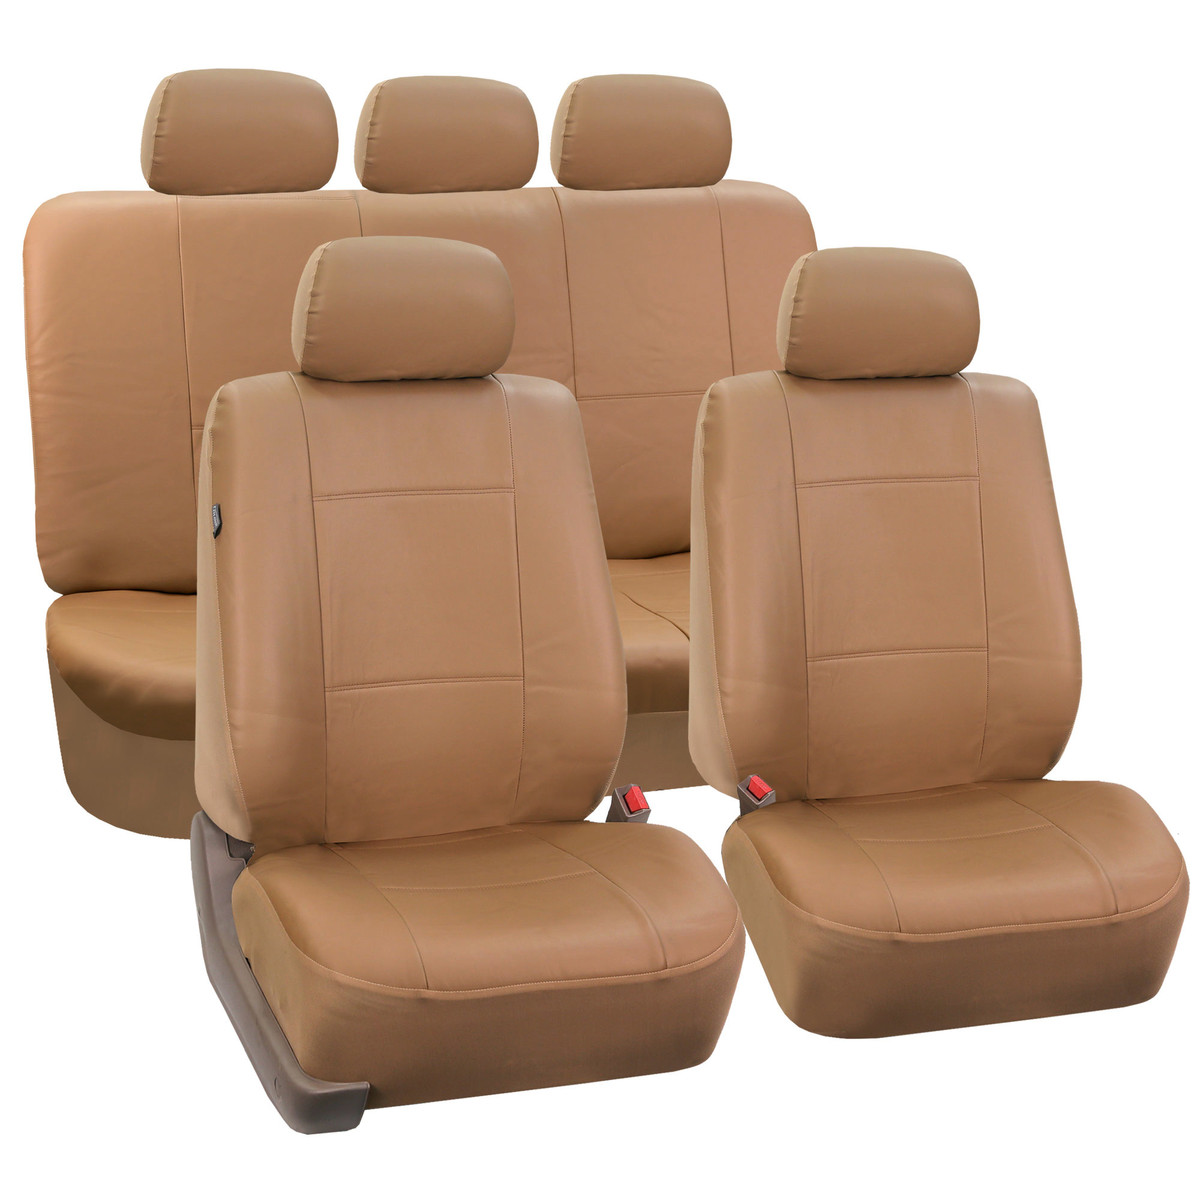 Seat covers PU002115 tan 01